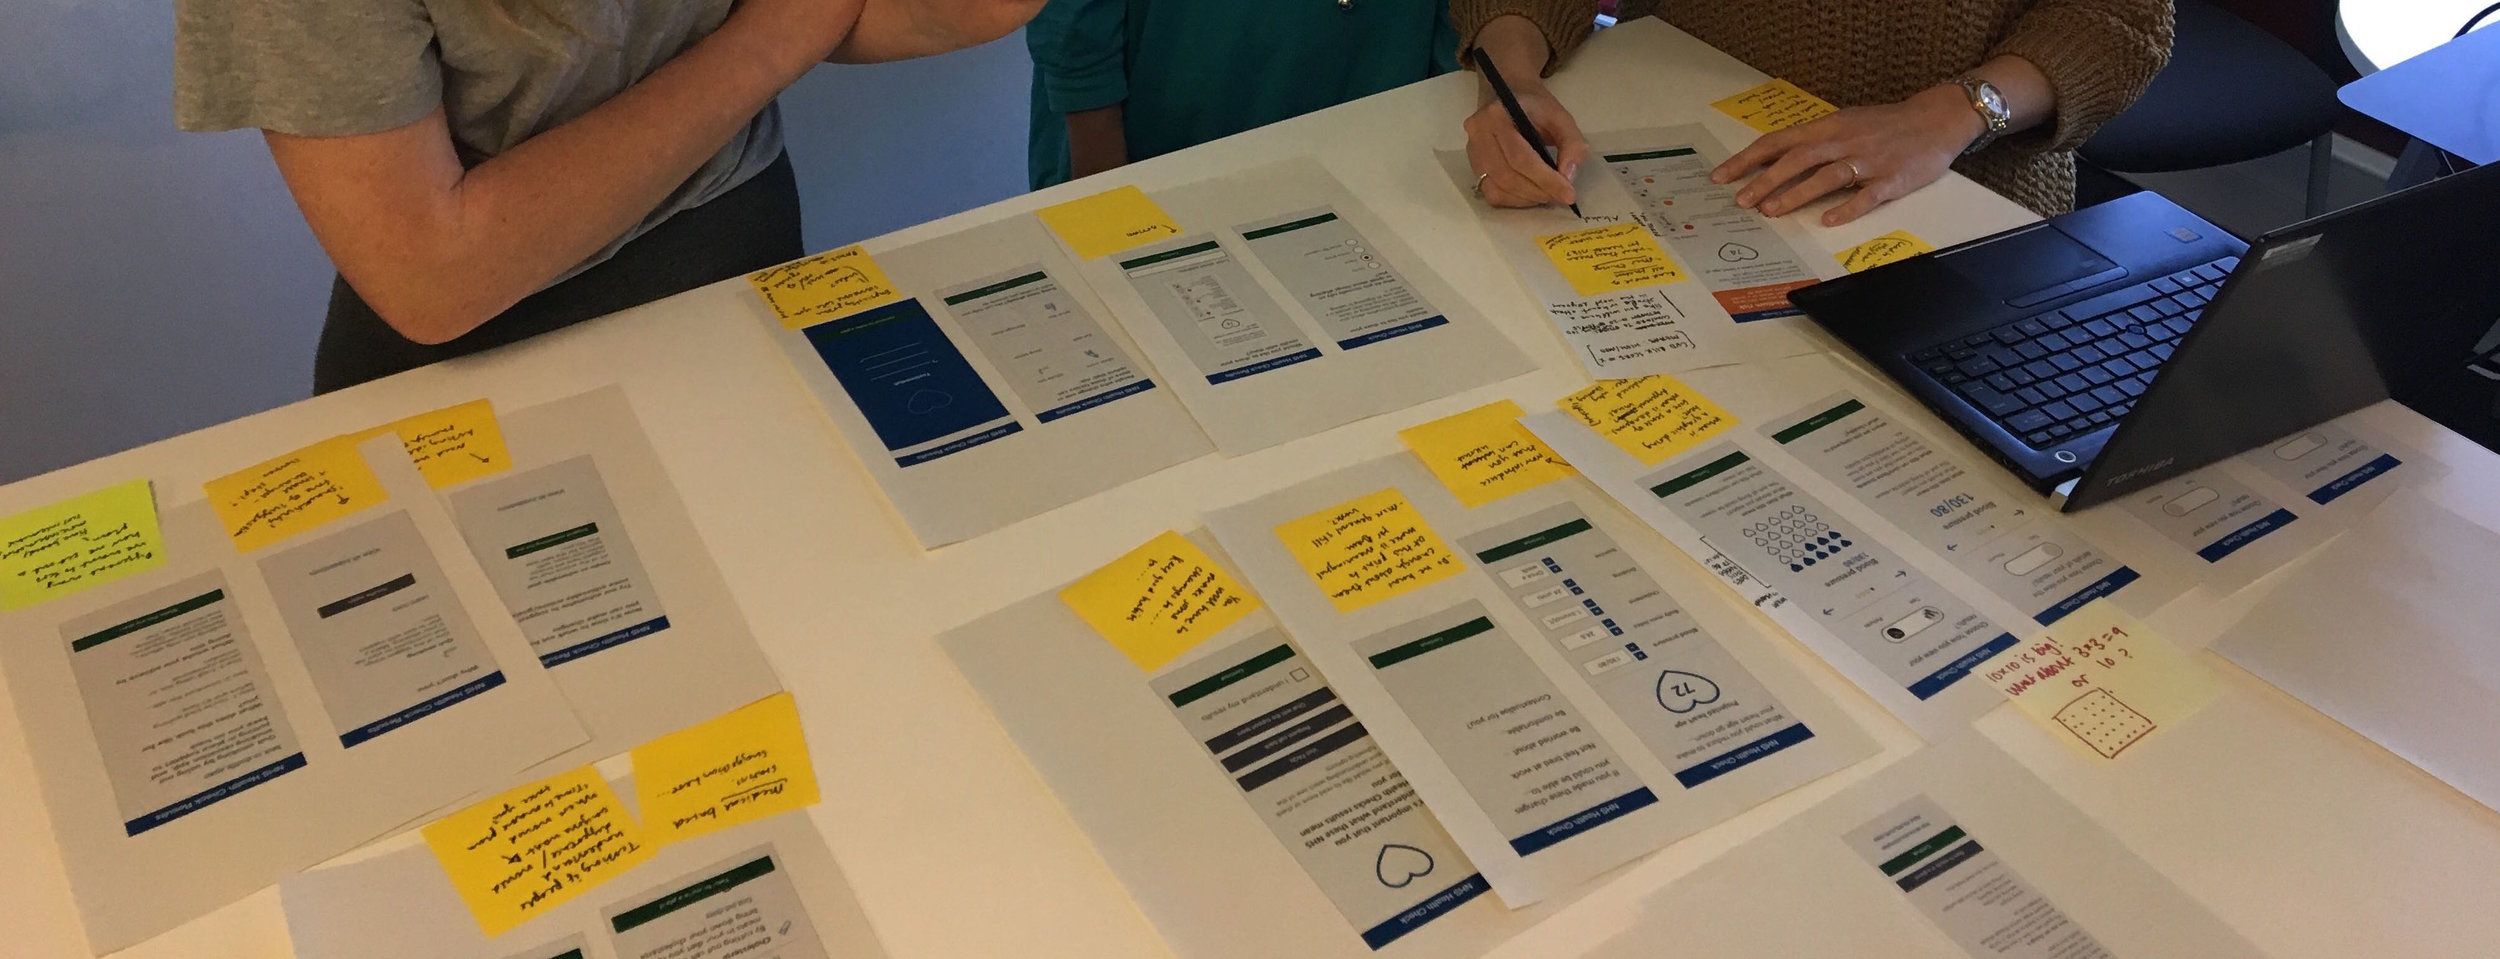 Collaborating with Behavioural Insights Advisors to integrate behavioural change techniques into interaction design concepts